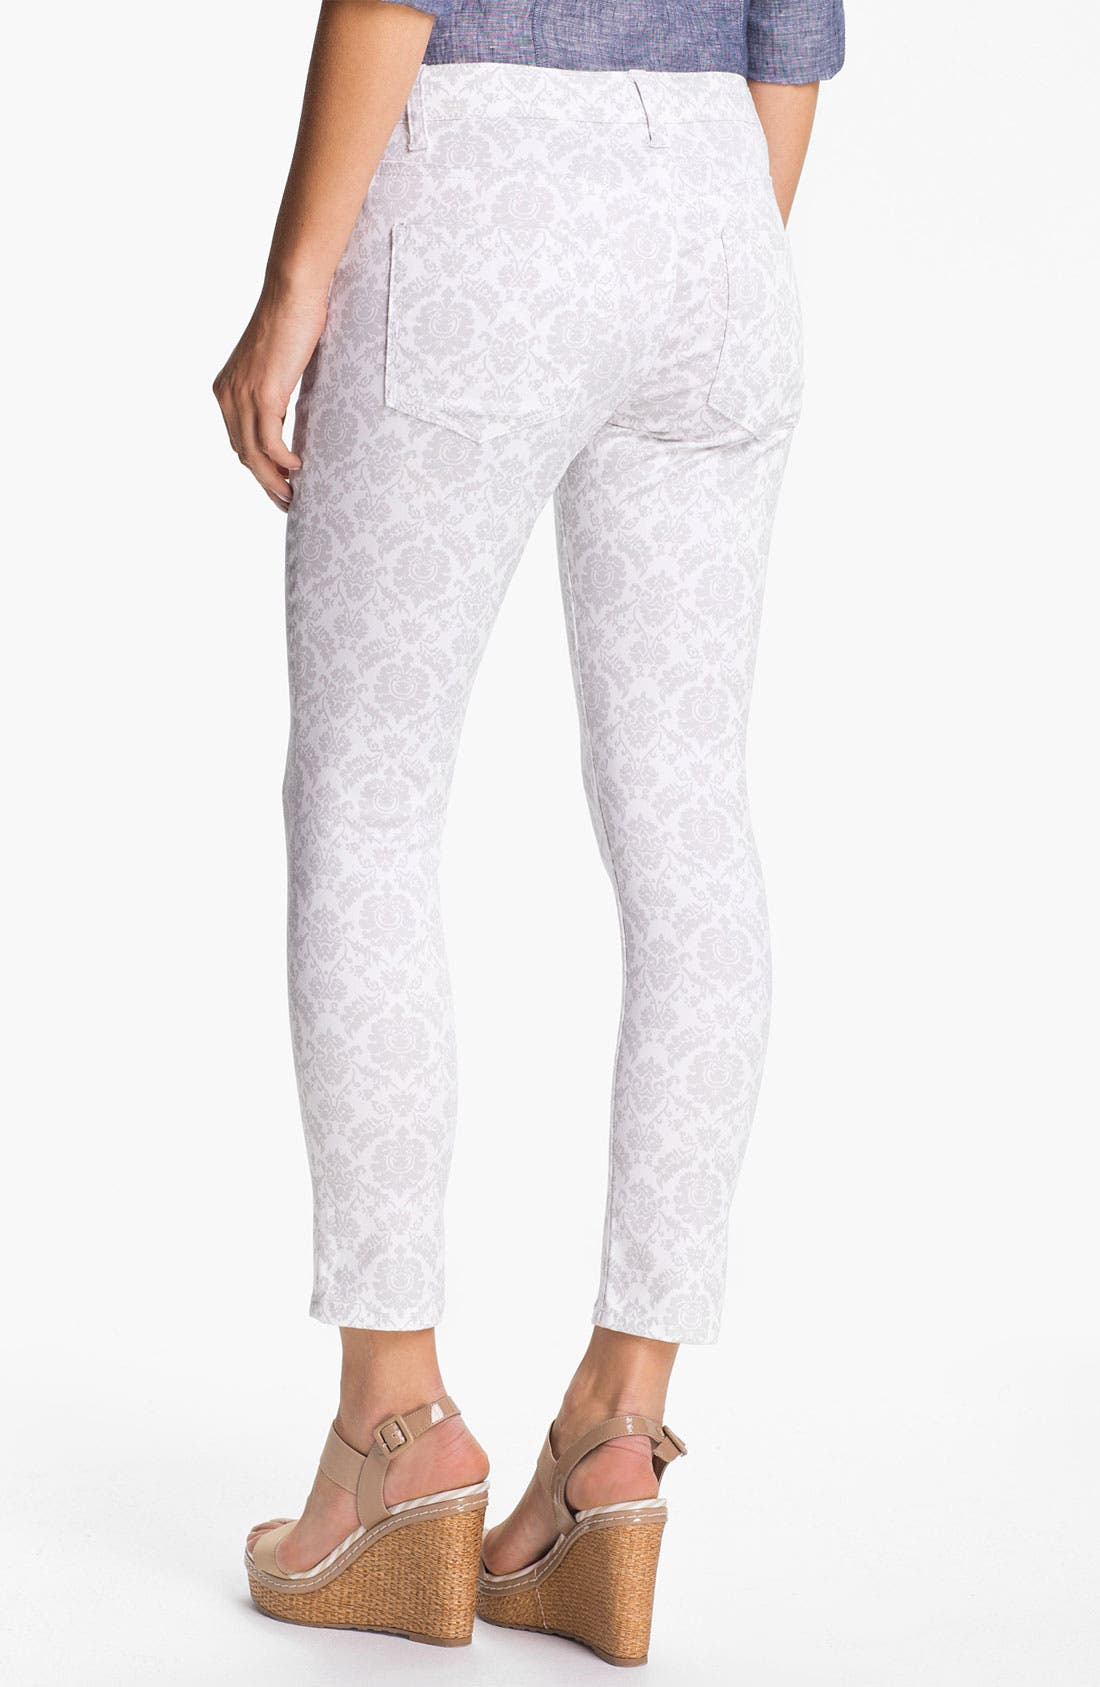 Alternate Image 2  - Liverpool Jeans Company 'Abby' Skinny Print Ankle Jeans